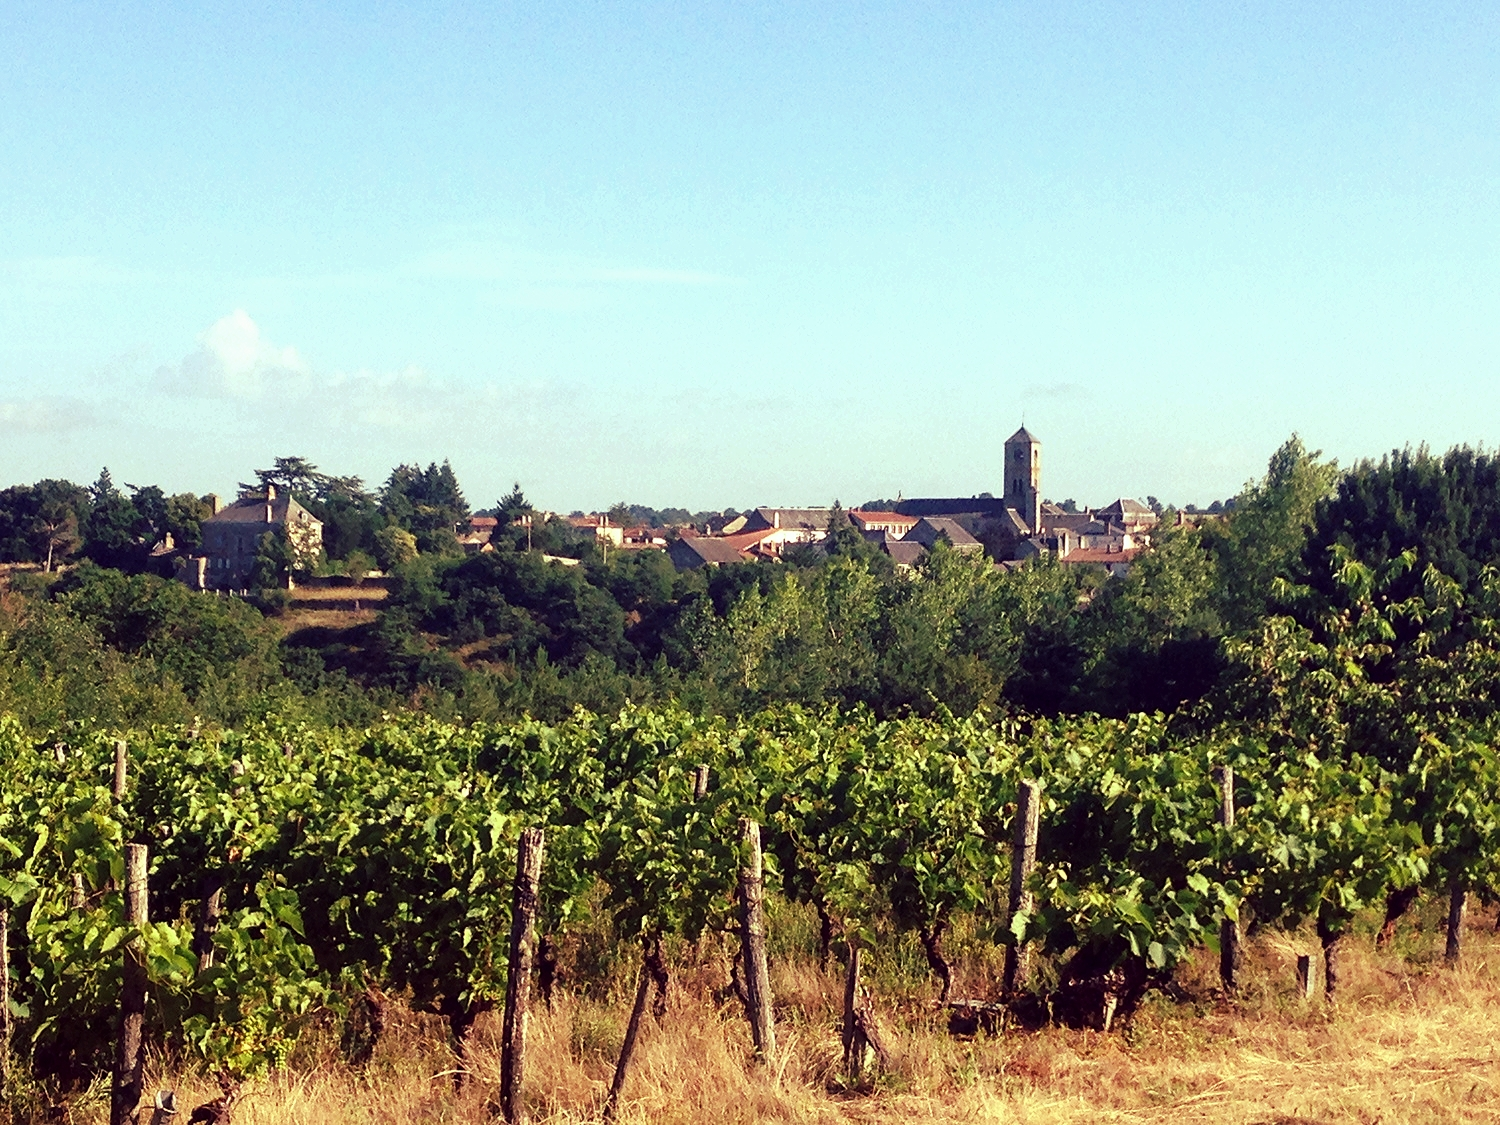 Distant view of Argenton-Chateau, taken with my iPhone from a walk through the neighboring vineyard and apple orchards.